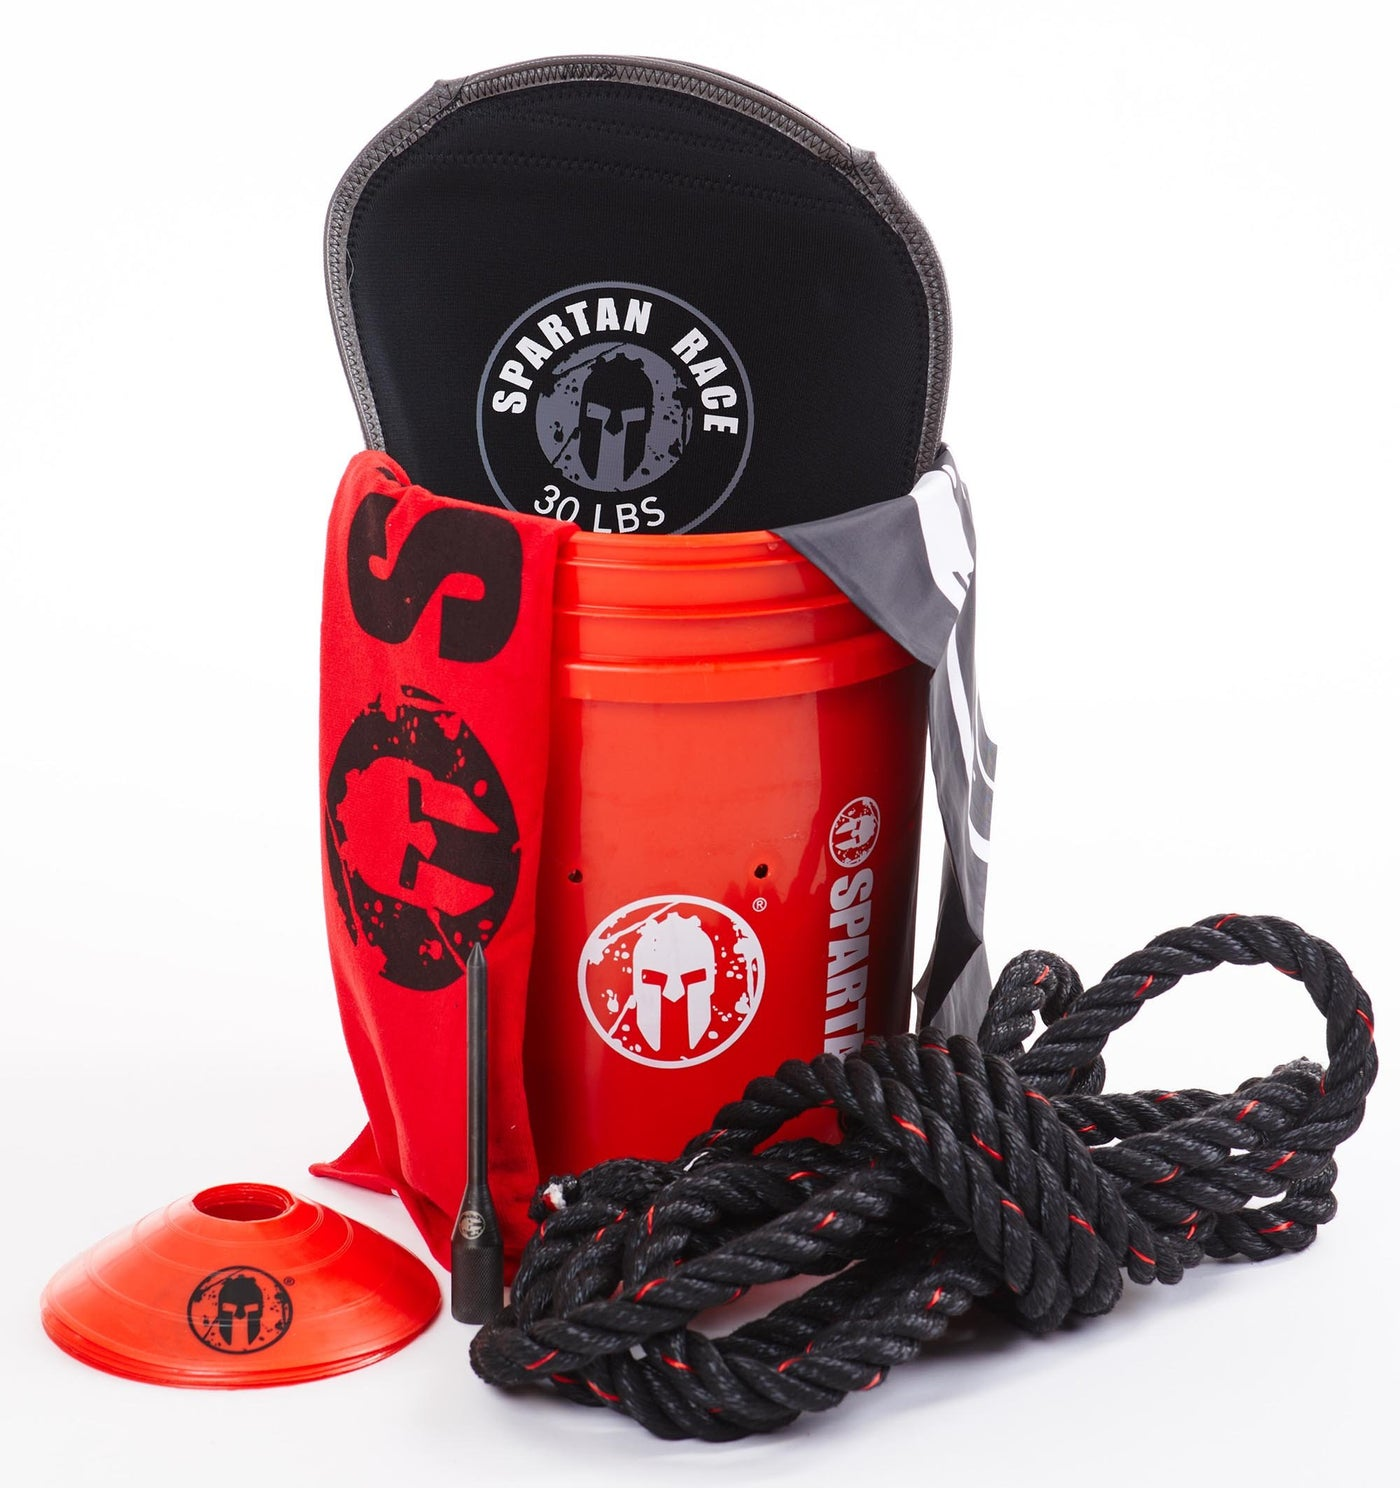 Spartan Race Shop SPARTAN In A Bucket Training Kit - Beast Edition - Women's